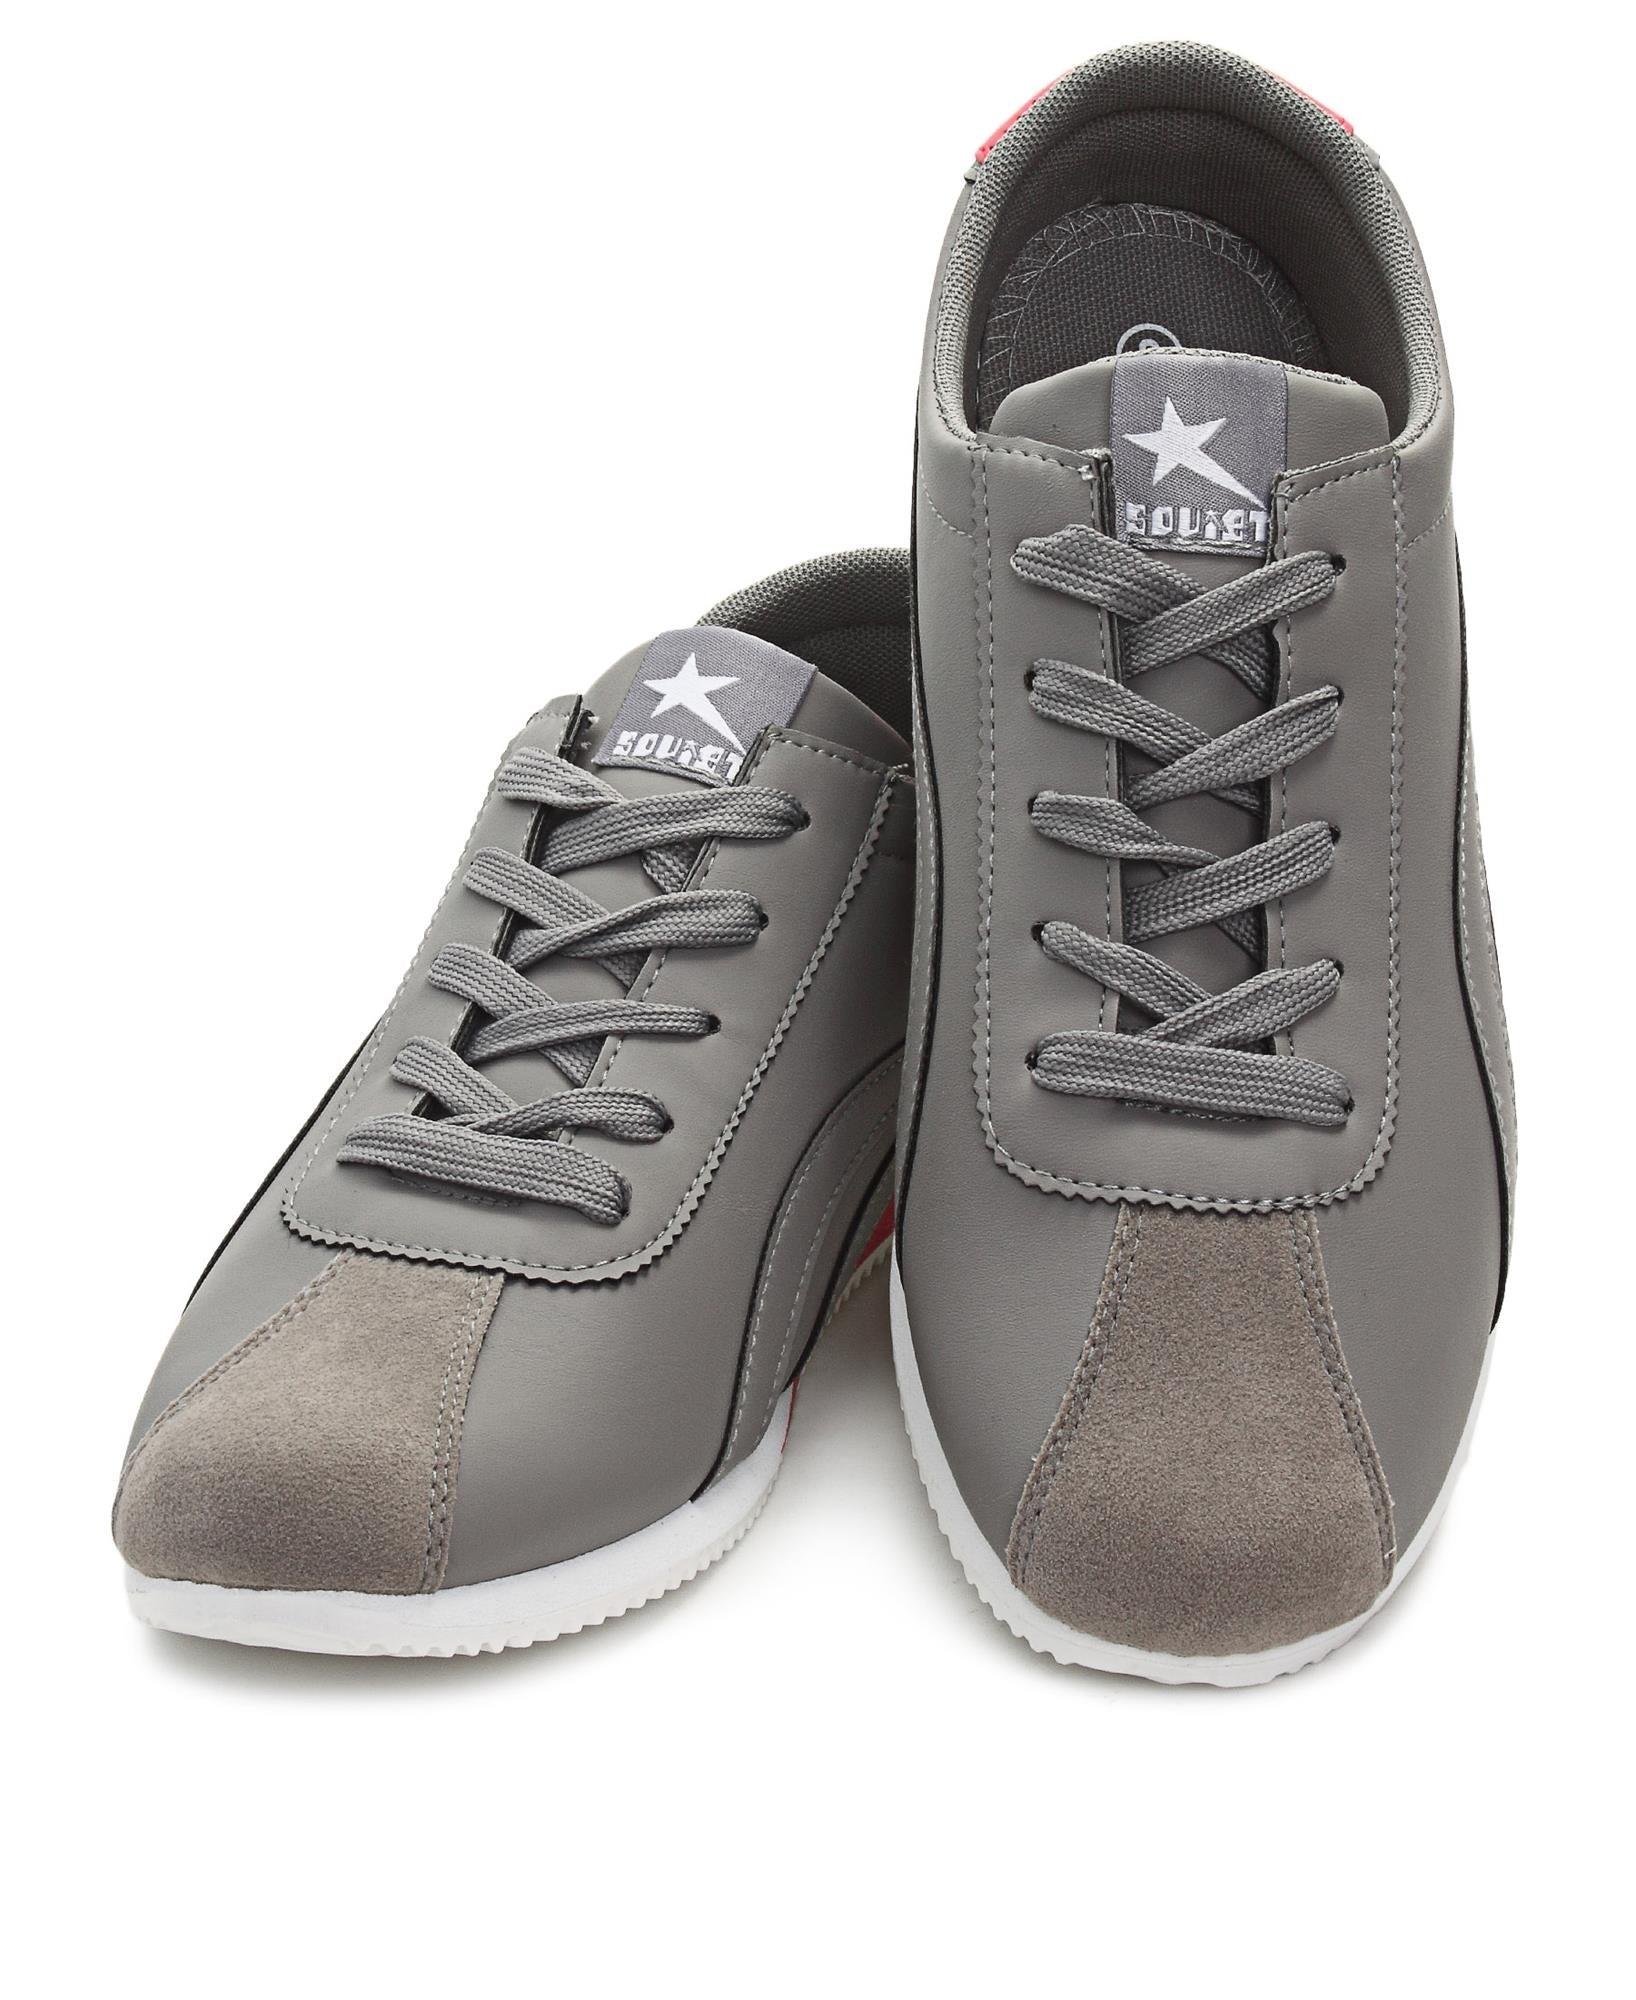 Men's Kobe Sneakers - Grey